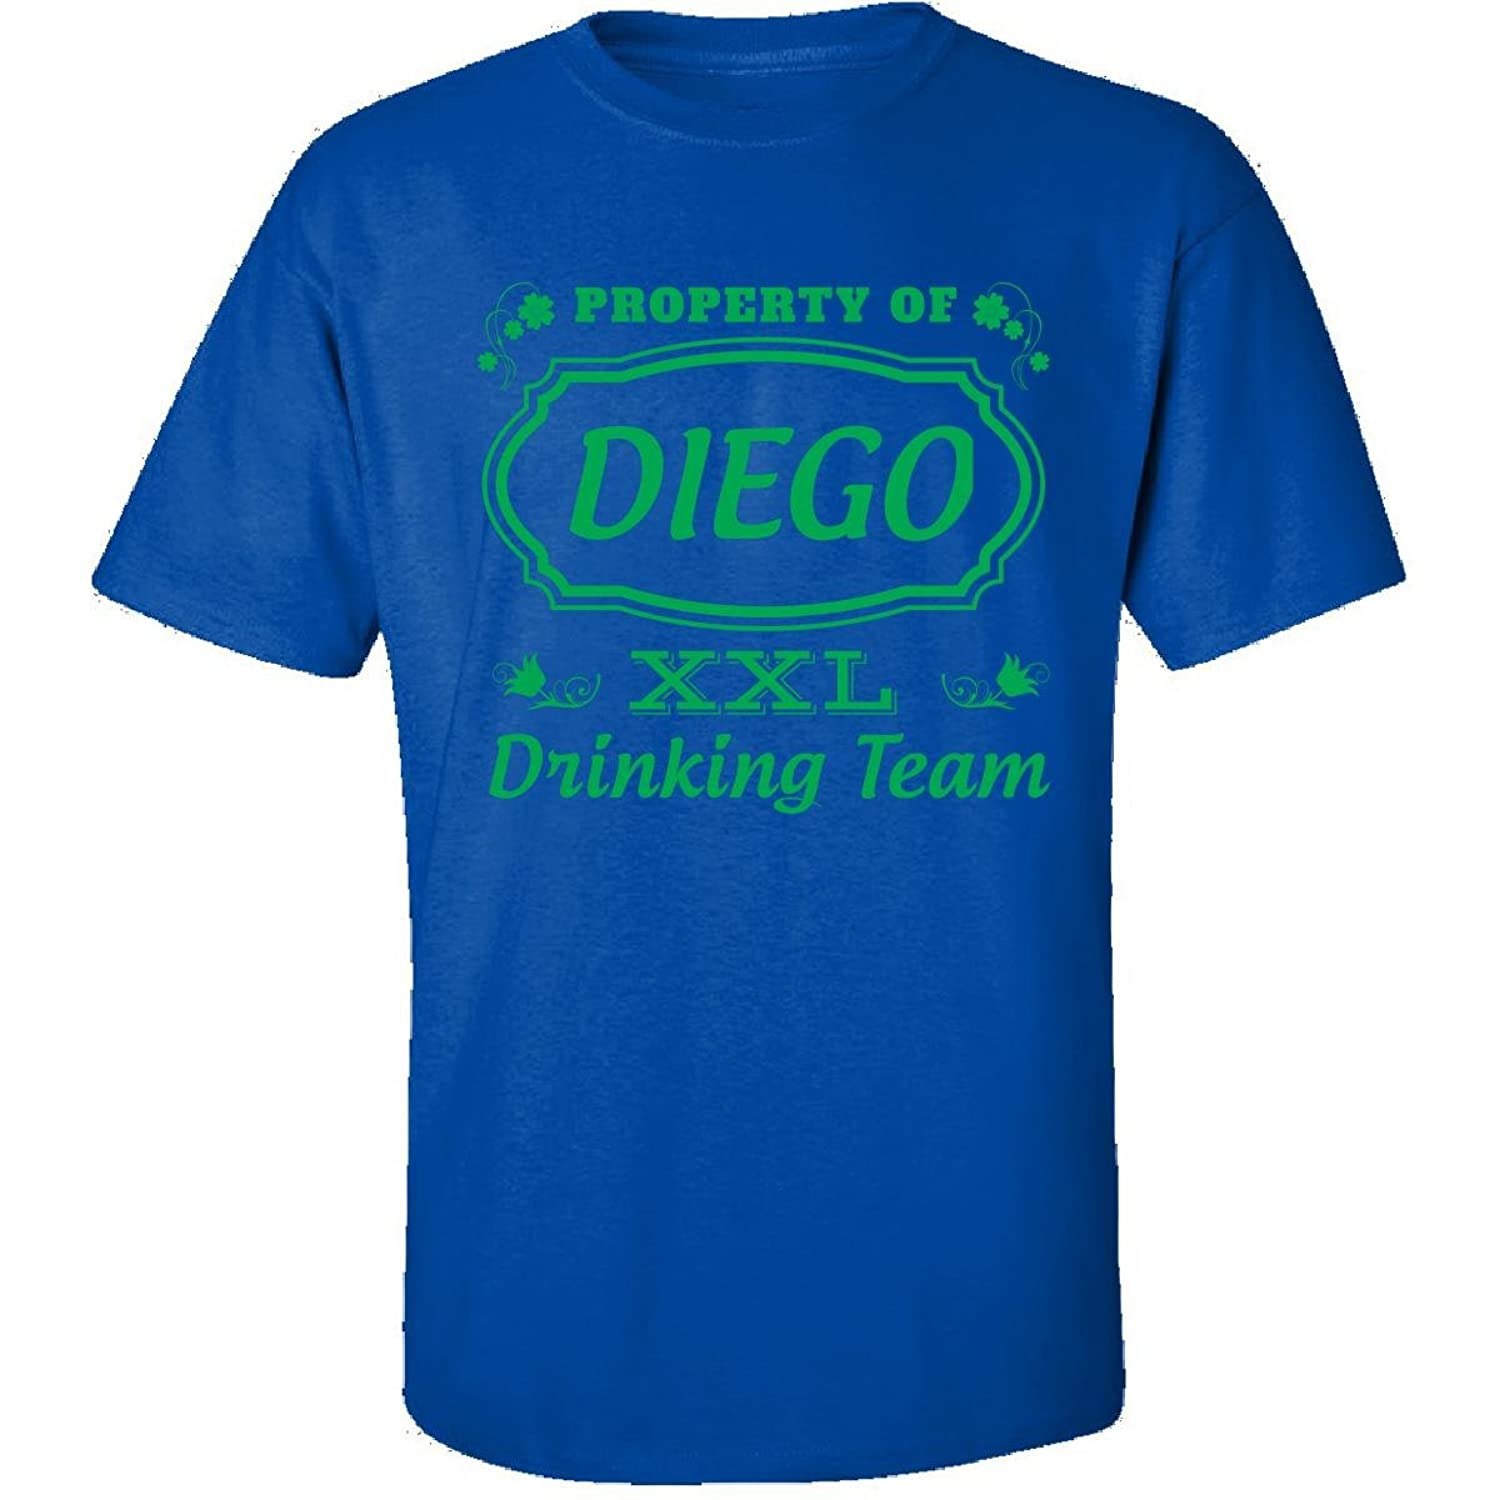 Property Of Diego St Patrick Day Beer Drinking Team - Adult Shirt